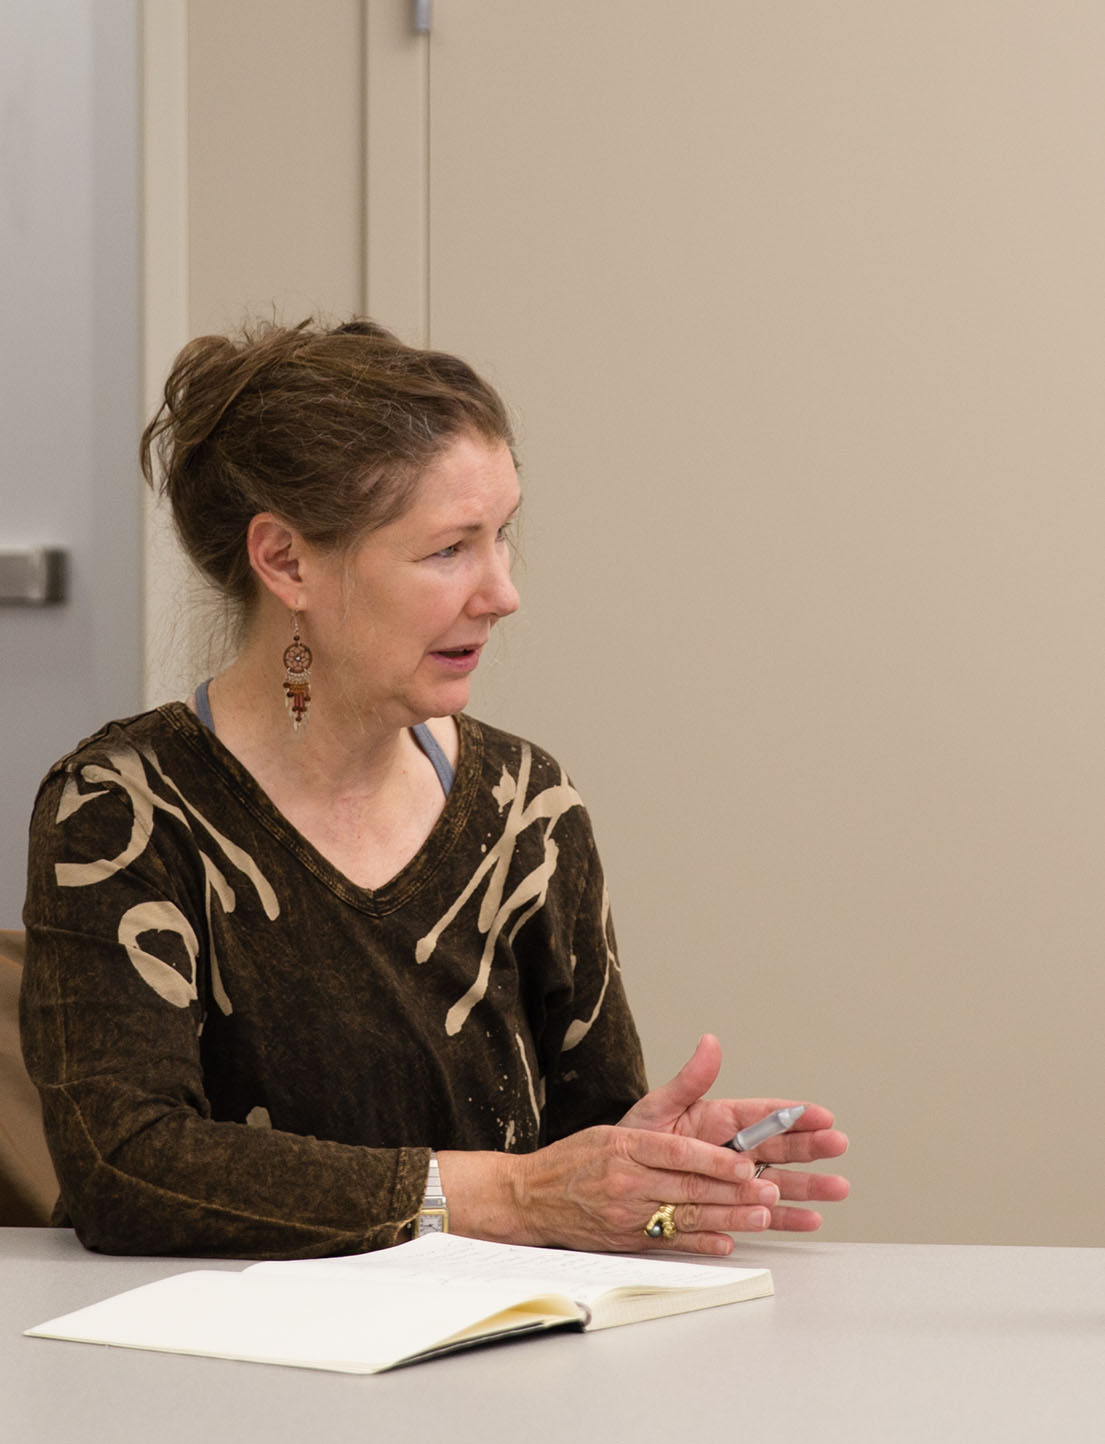 UA instructor Dr. Chapman Greer shares information about a project her class in business communications is conducting.